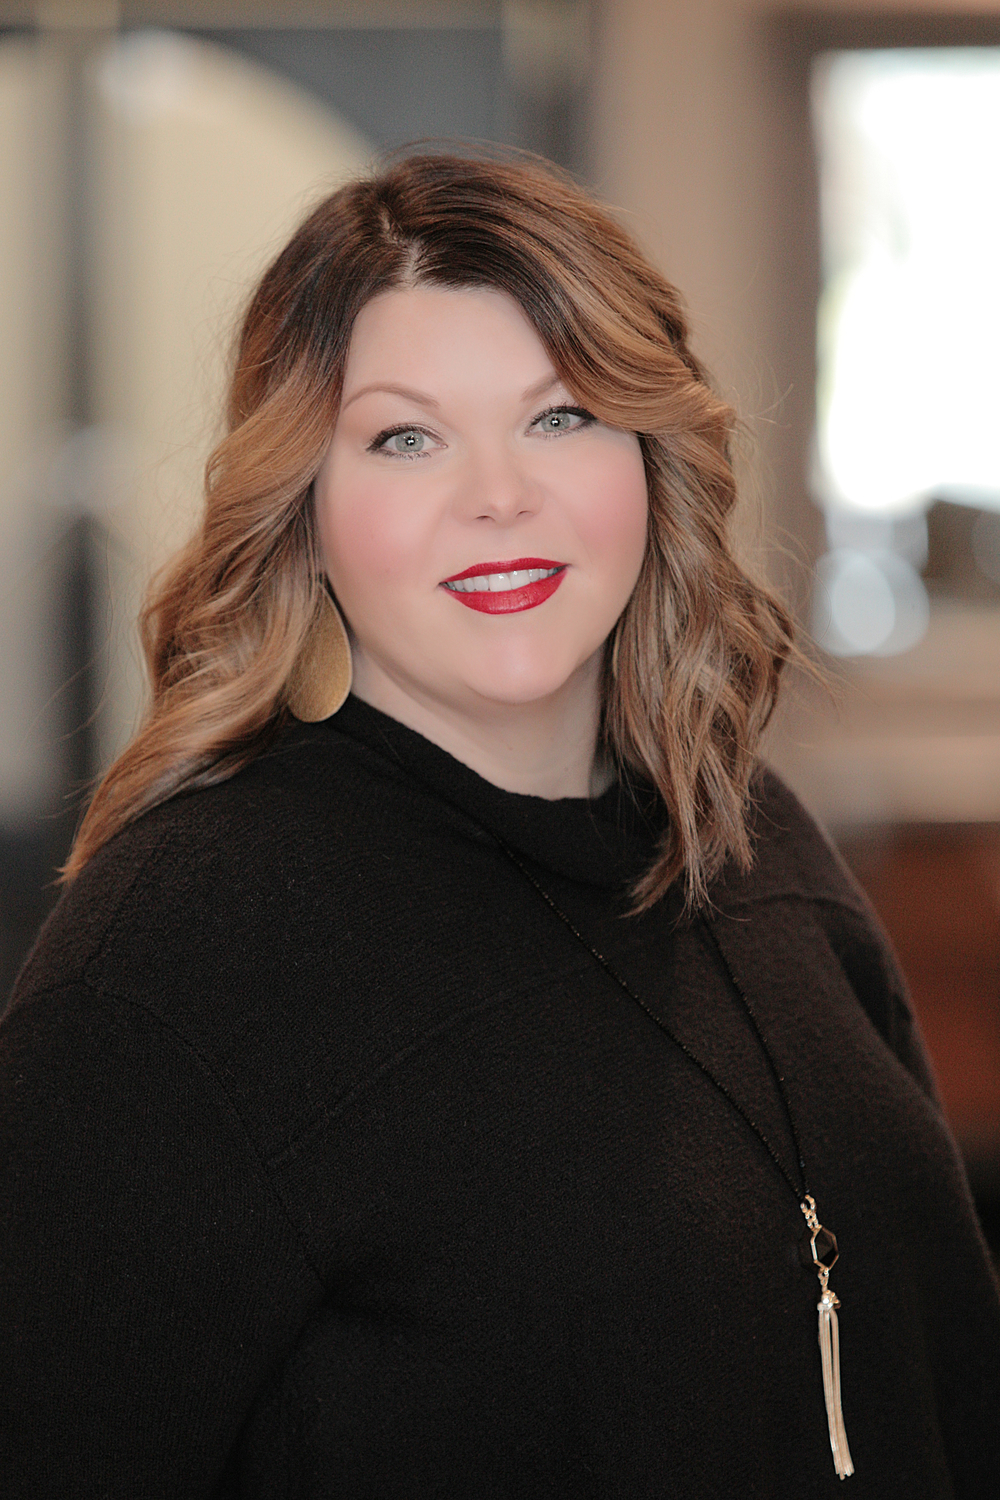 Jesi Hartley Jesi loves to create masterpieces with hair. Painting hair and carving a beautiful fringe are her specialties. She's always here to listen to specific needs and educate you on how to look your best. Let her polish your look to perfection.